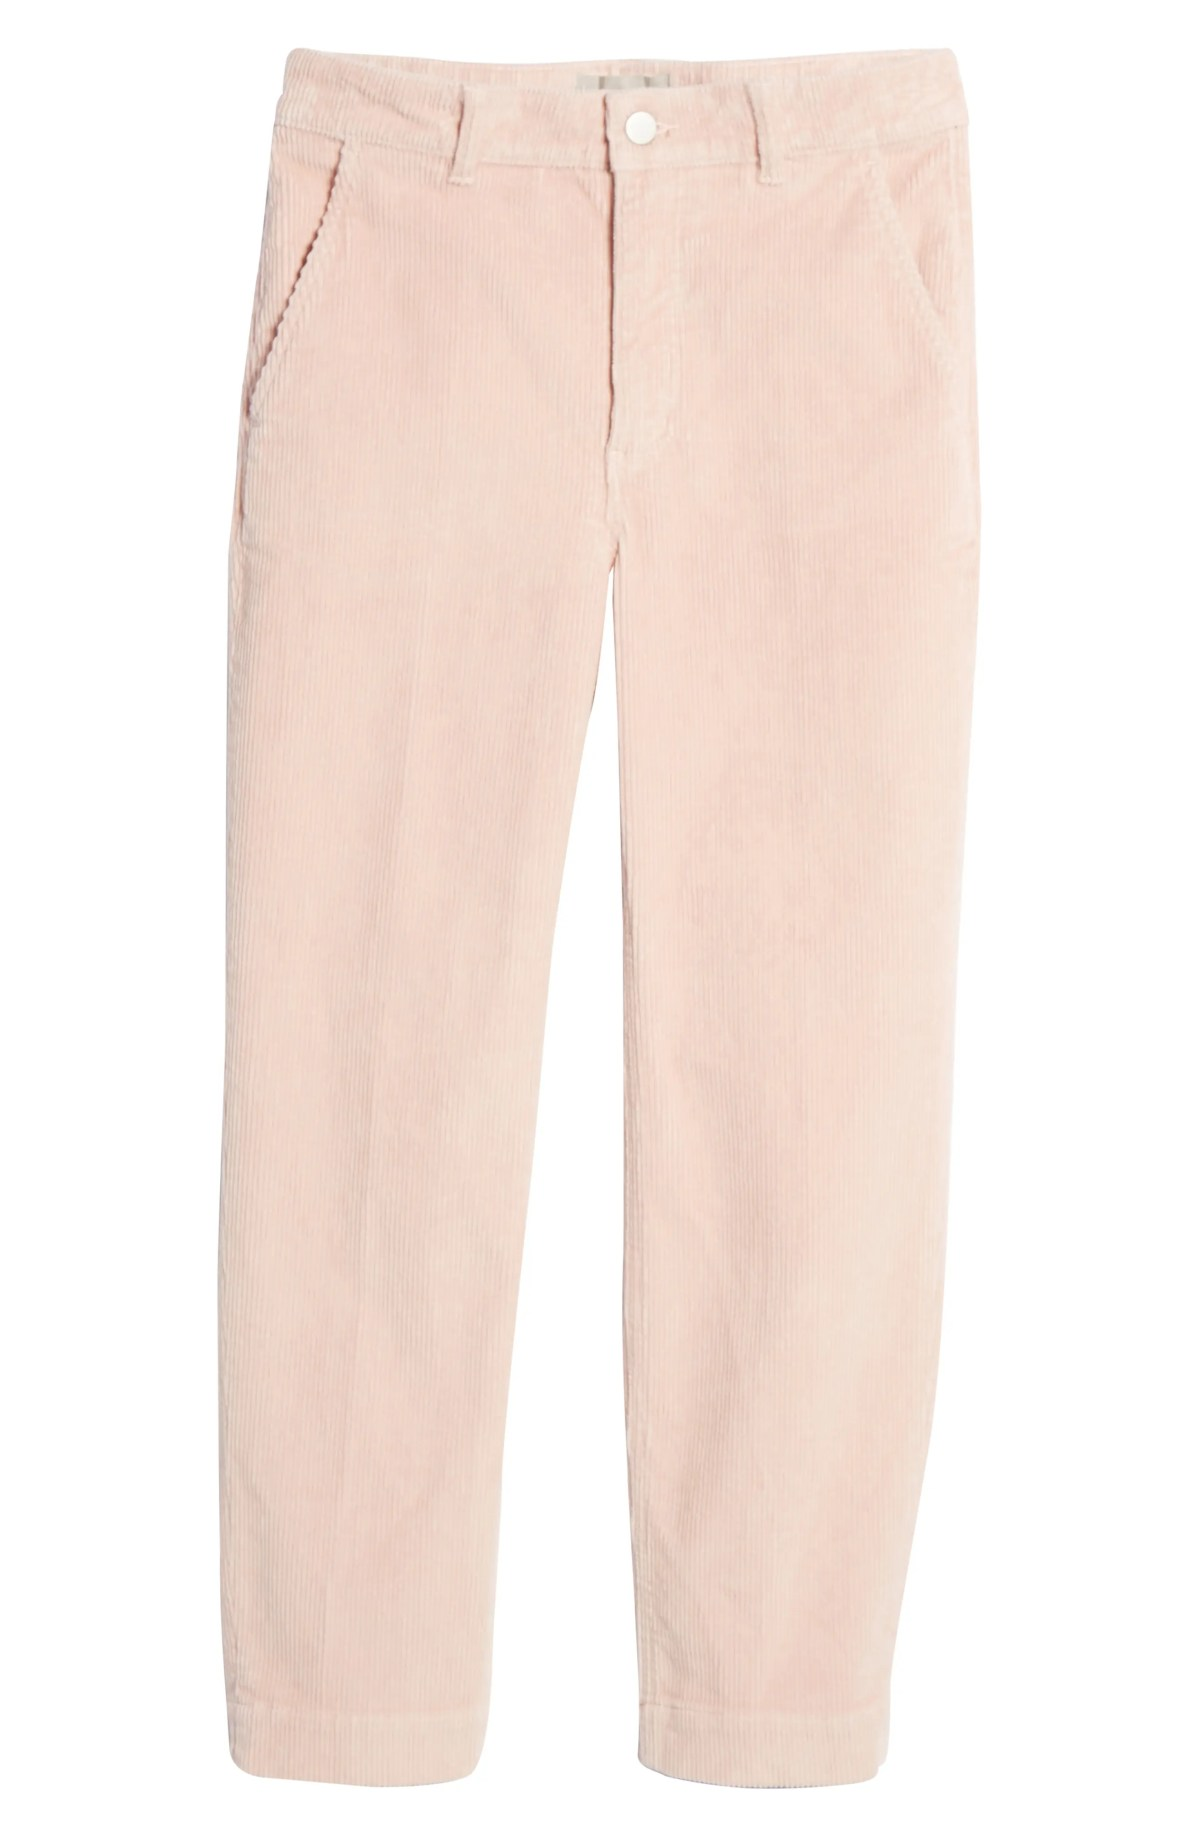 EVERLANE The Corduroy Straight Leg Crop Pants, Main, color, DUSTY PETAL